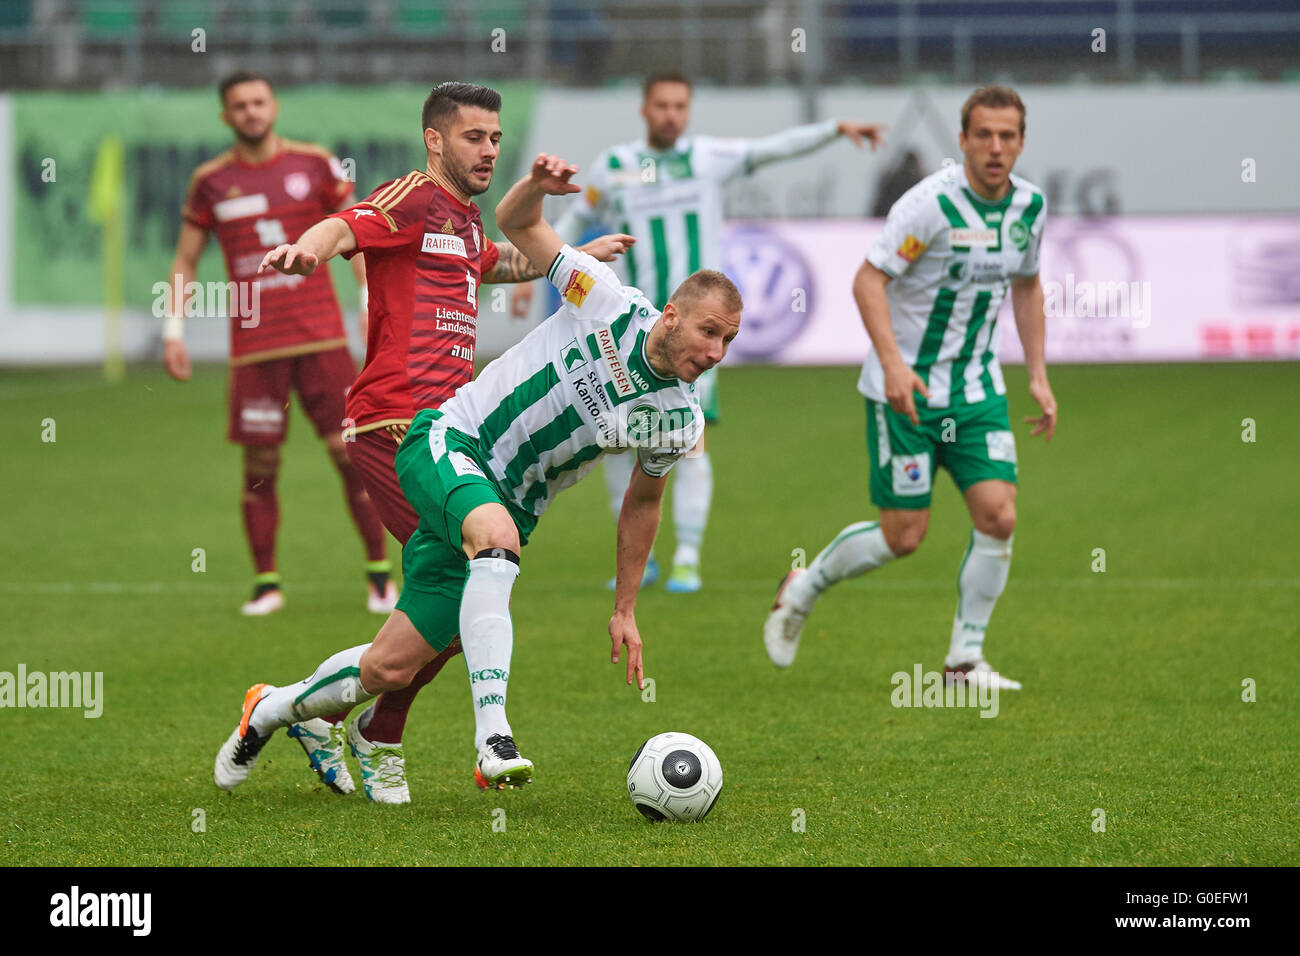 St. Gallen, Switzerland. 1st May, 2016. Dzengis Cavusevic is fouled by an FC Vaduz Player in the Raiffeisen Super - Stock Image